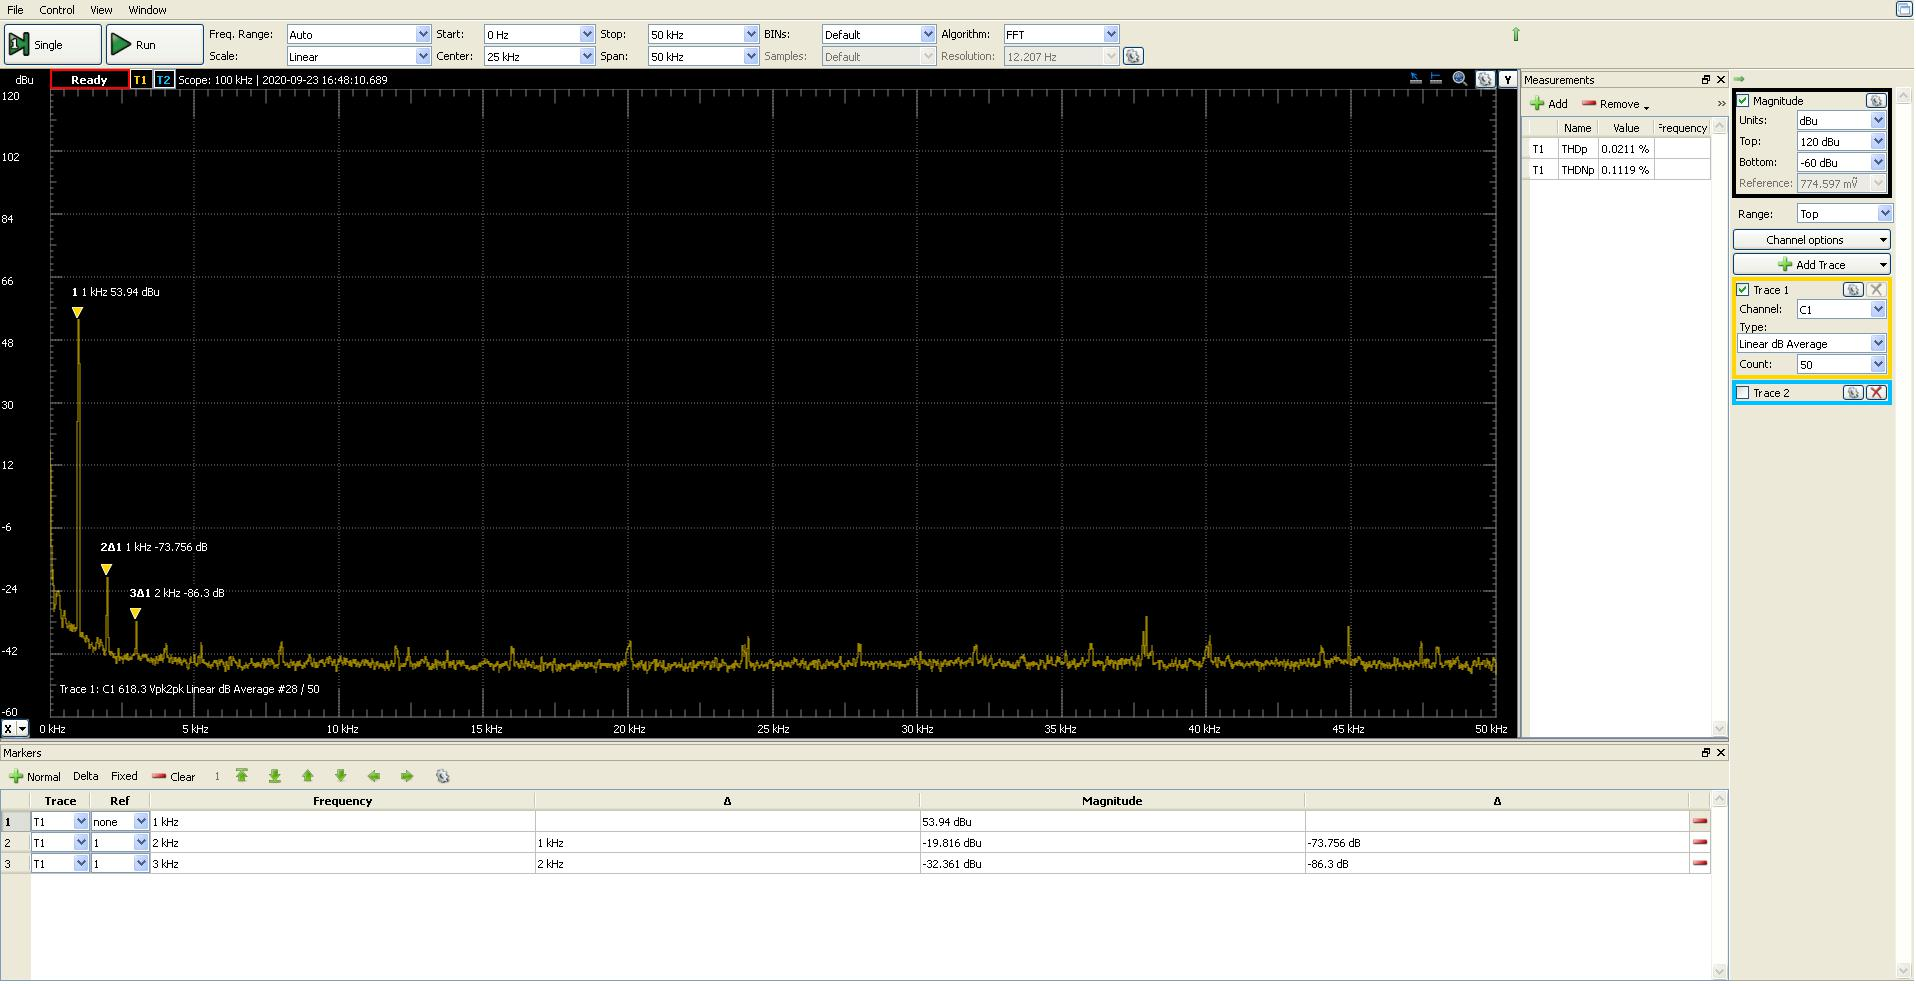 ARC M60 DST Spectrum 0-50kHz.jpeg